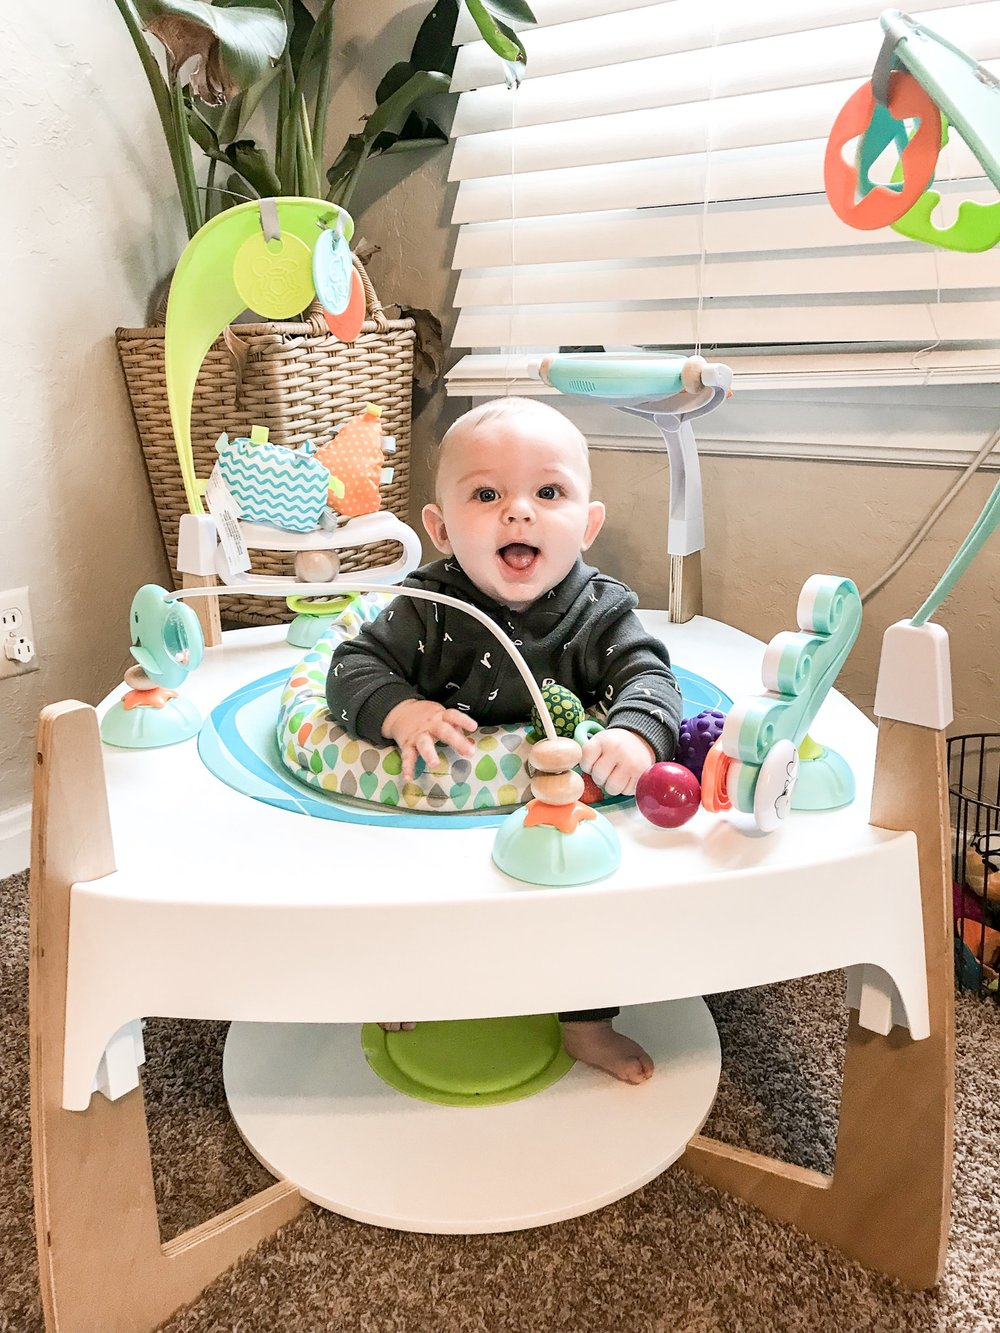 EVENFLO EXERSAUCER ACTIVITY CENTER - Your baby will play for 30 minutes straight with this thing! MOM WIN!